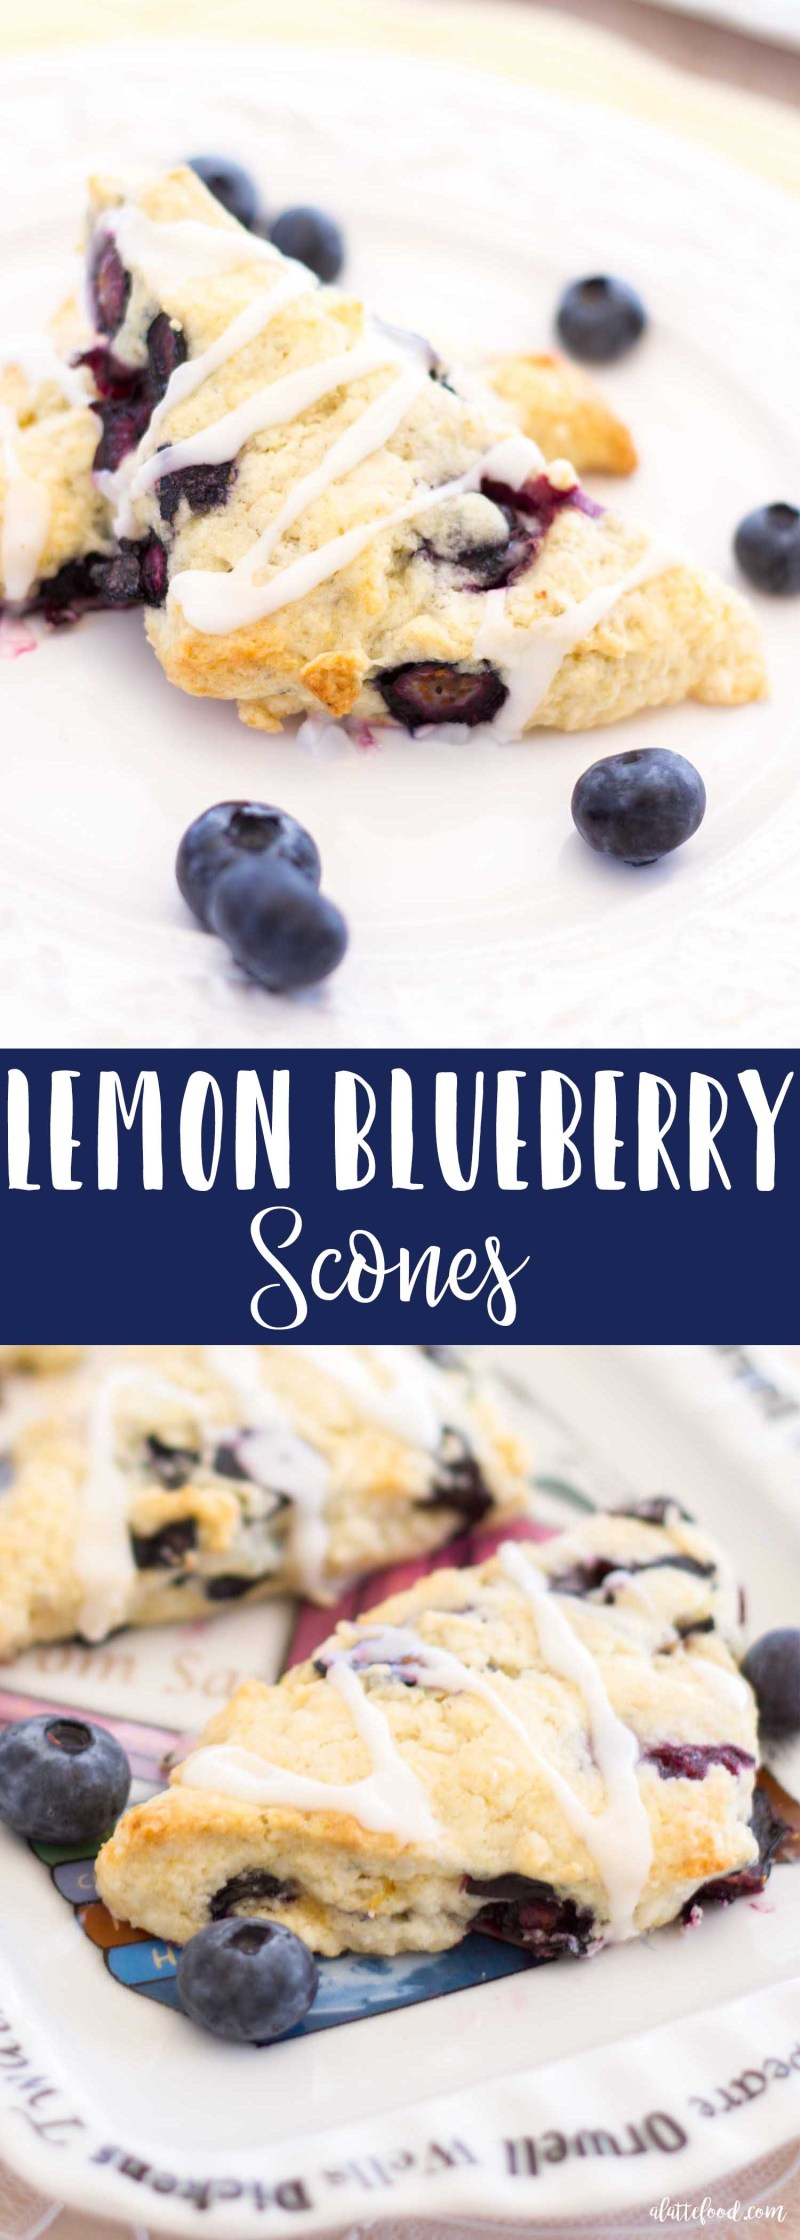 These easy homemade Lemon Blueberry Scones are sweet, buttery, and topped with a tangy and sweet lemon glaze! Homemade scones are perfect for breakfast, brunch, or even an afternoon tea snack!